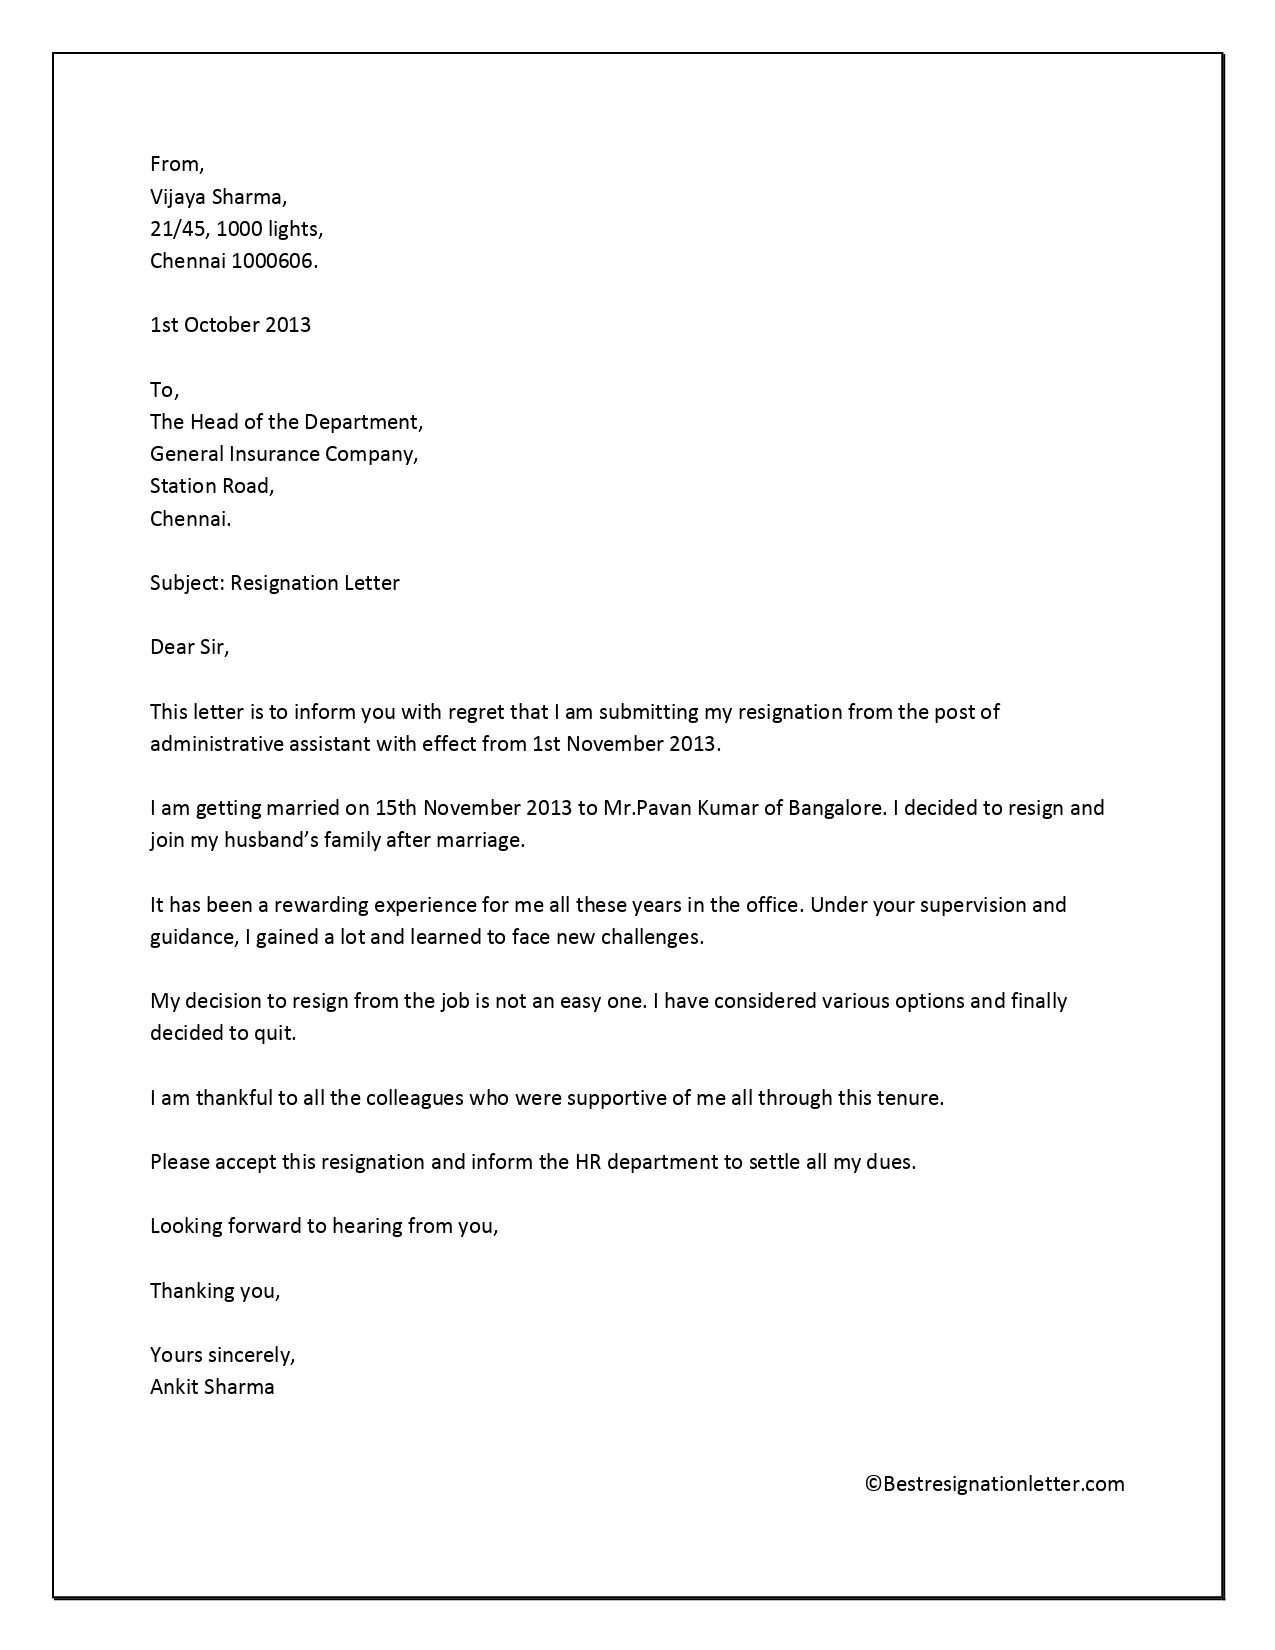 Resignation Letter With Immediate Effect For Personal Reasons In 2020 Resignation Letter Resignation Letter Sample Employee Resignation Letter